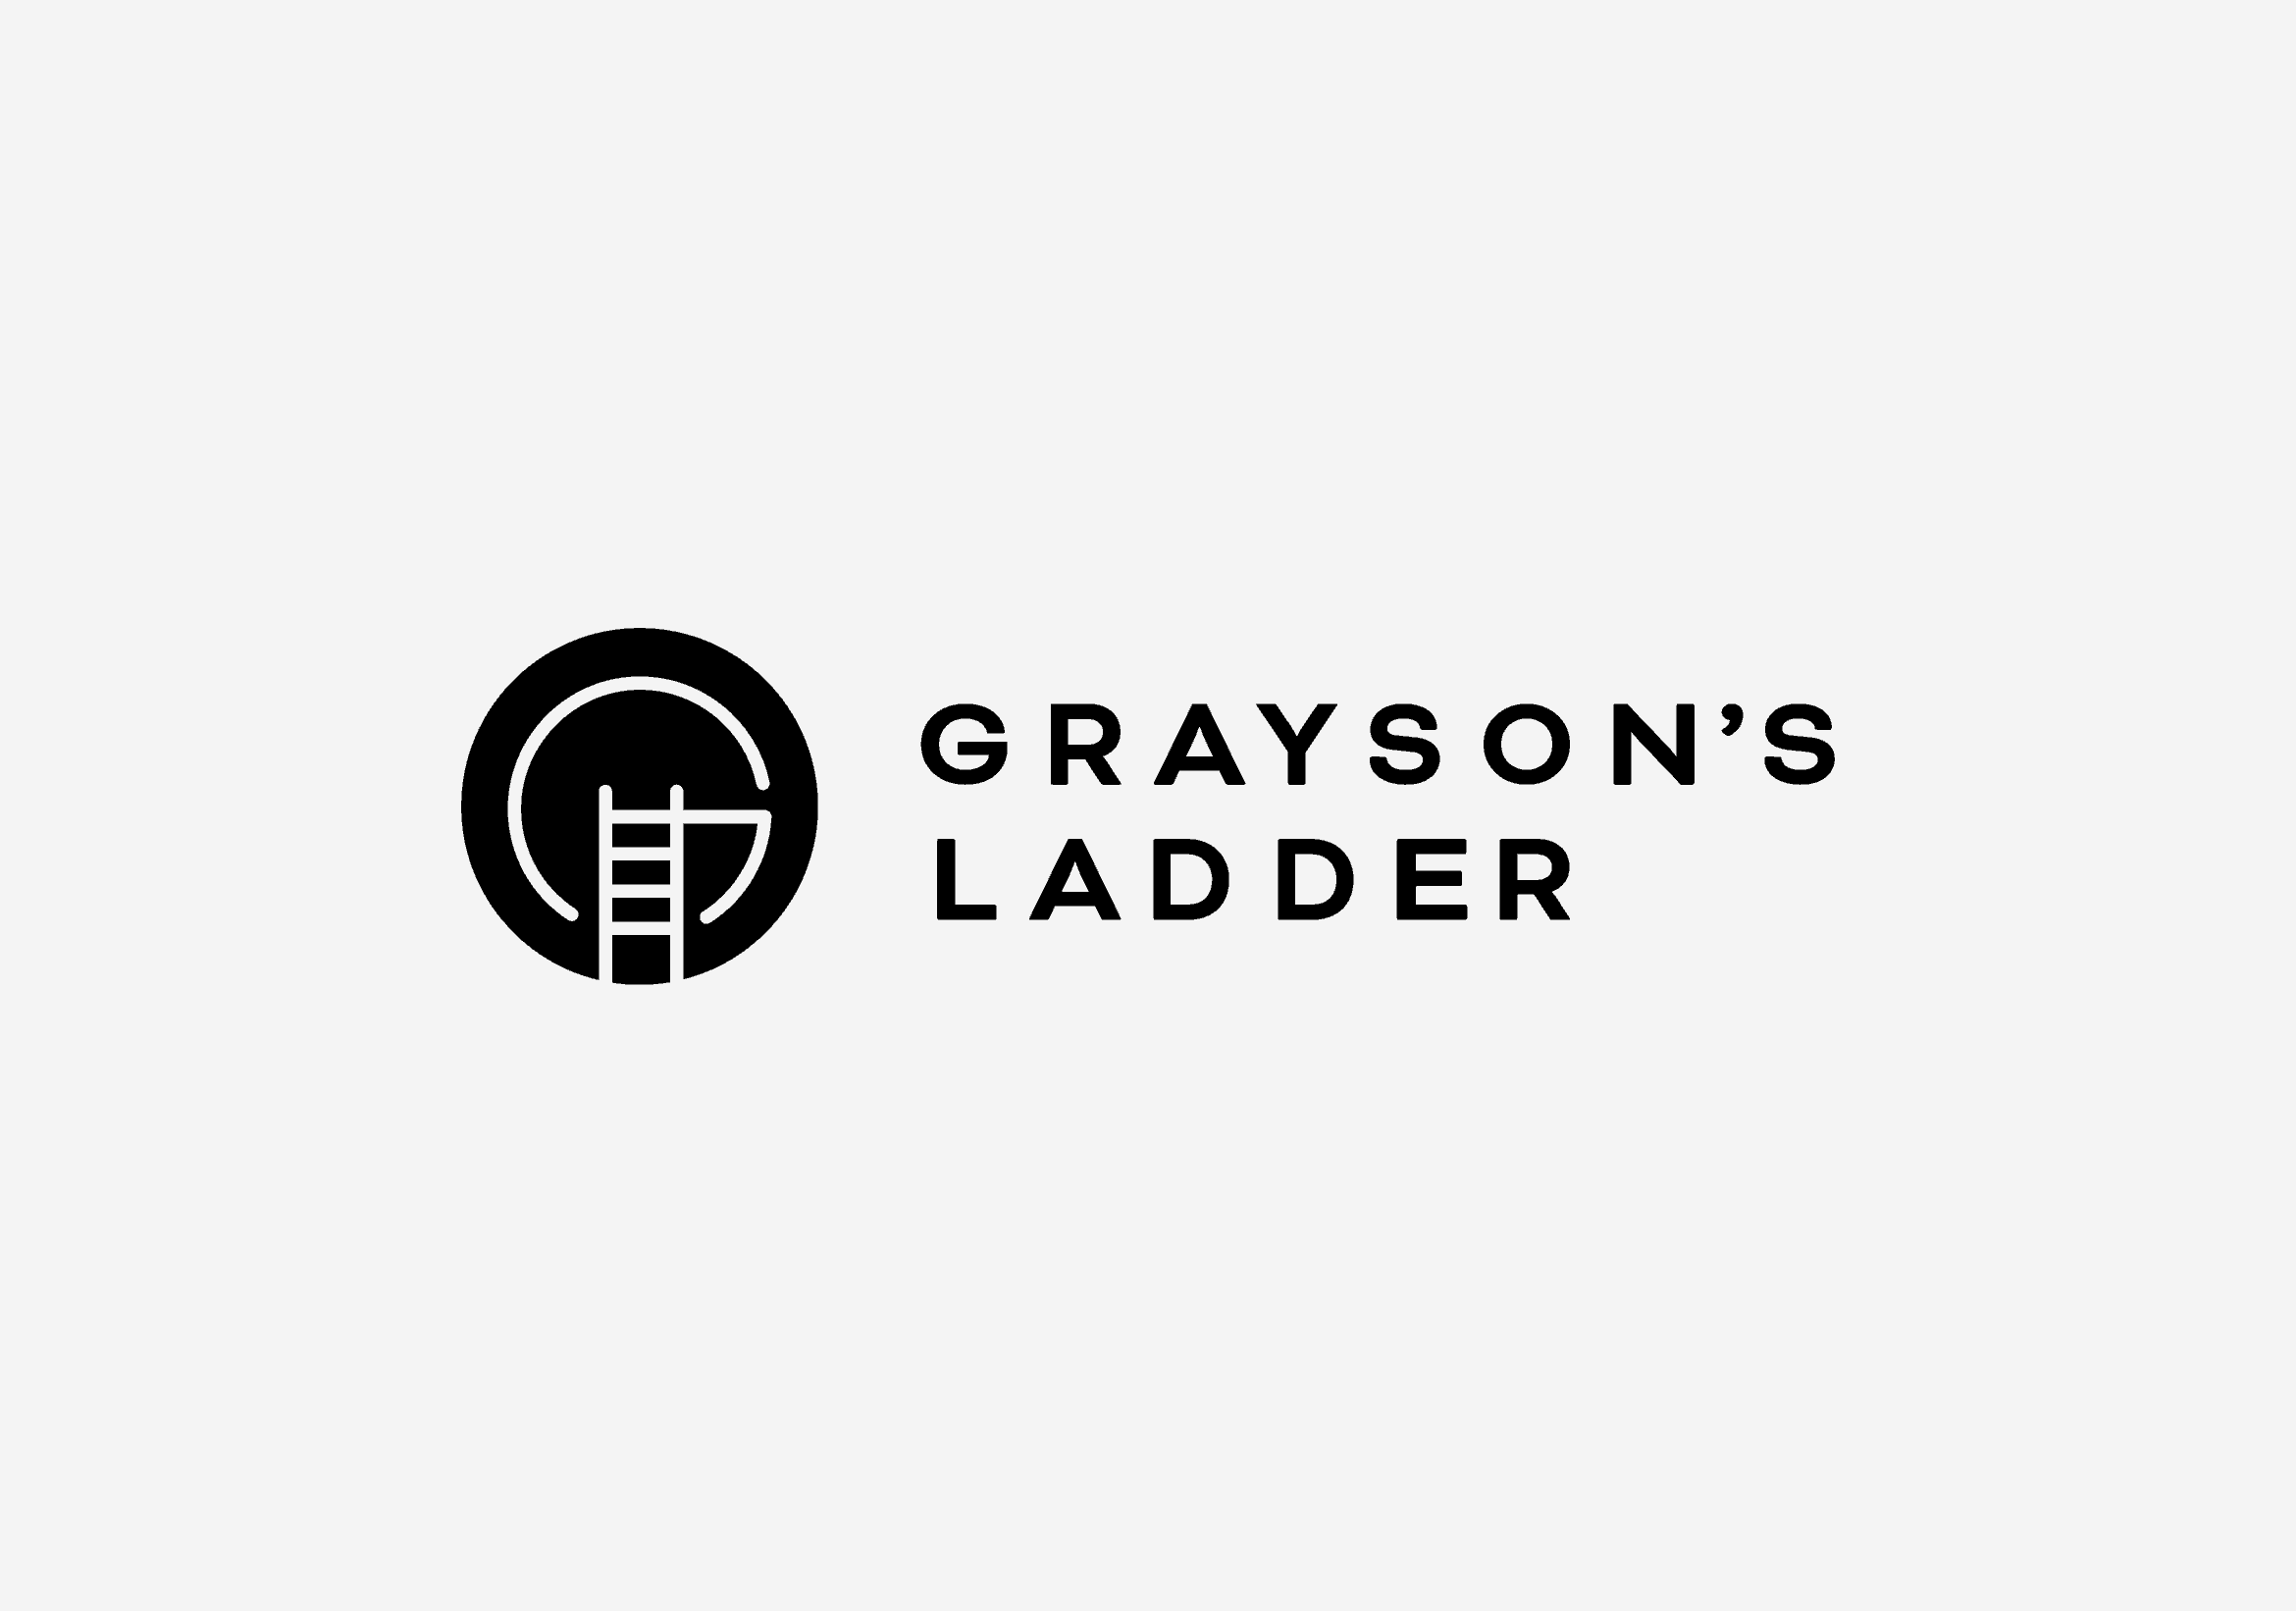 logos-graysonsladder-logo